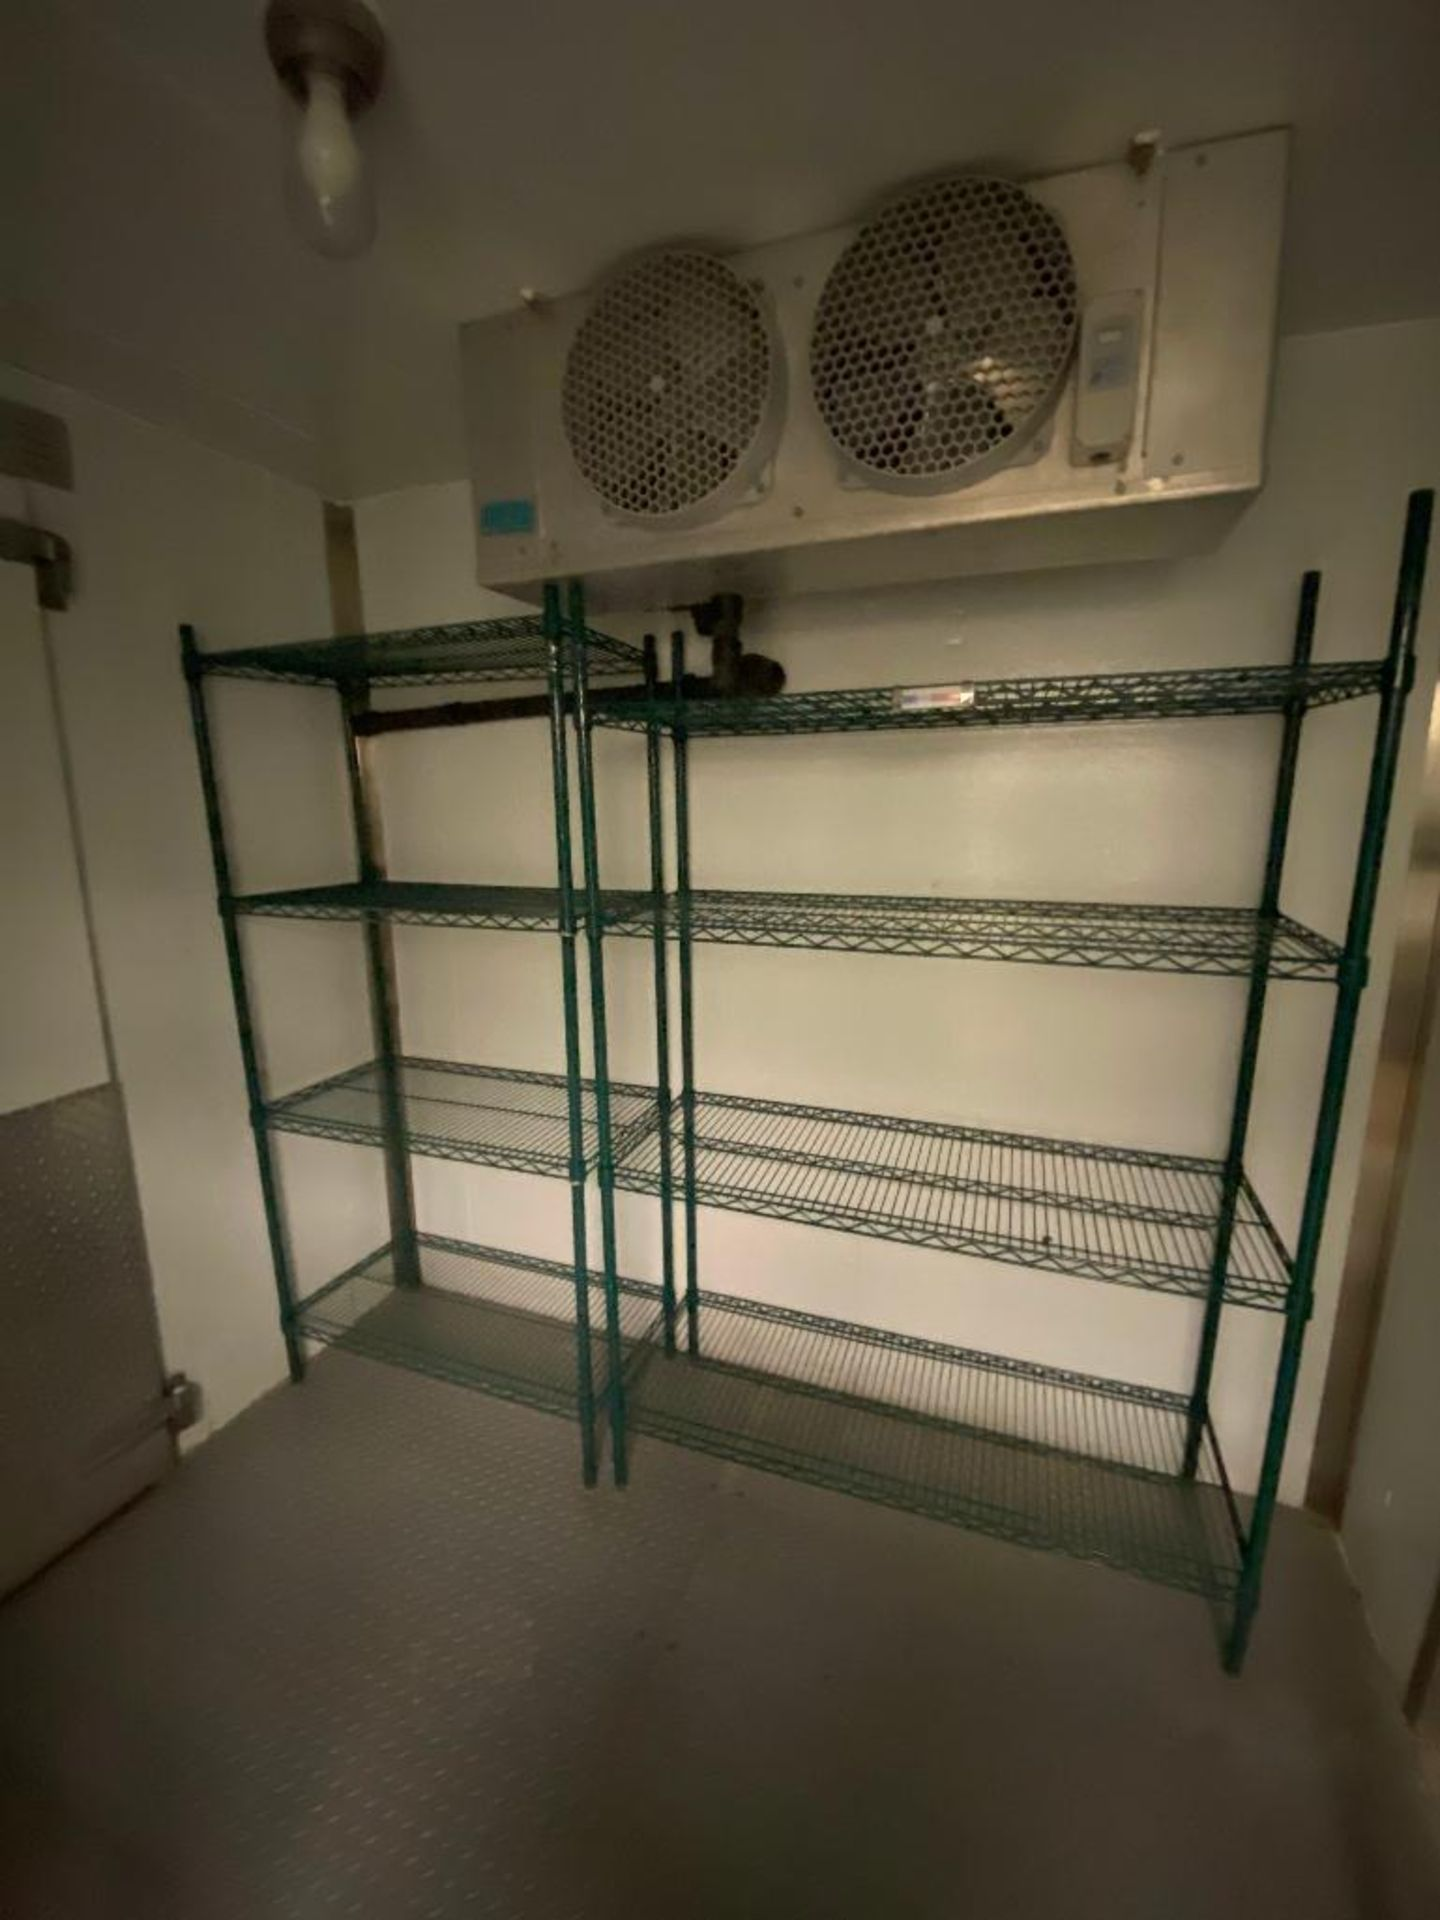 LOT OF (4) GREEN WIRE STORAGE RACKS, ASSORTED SIZES - Image 2 of 4